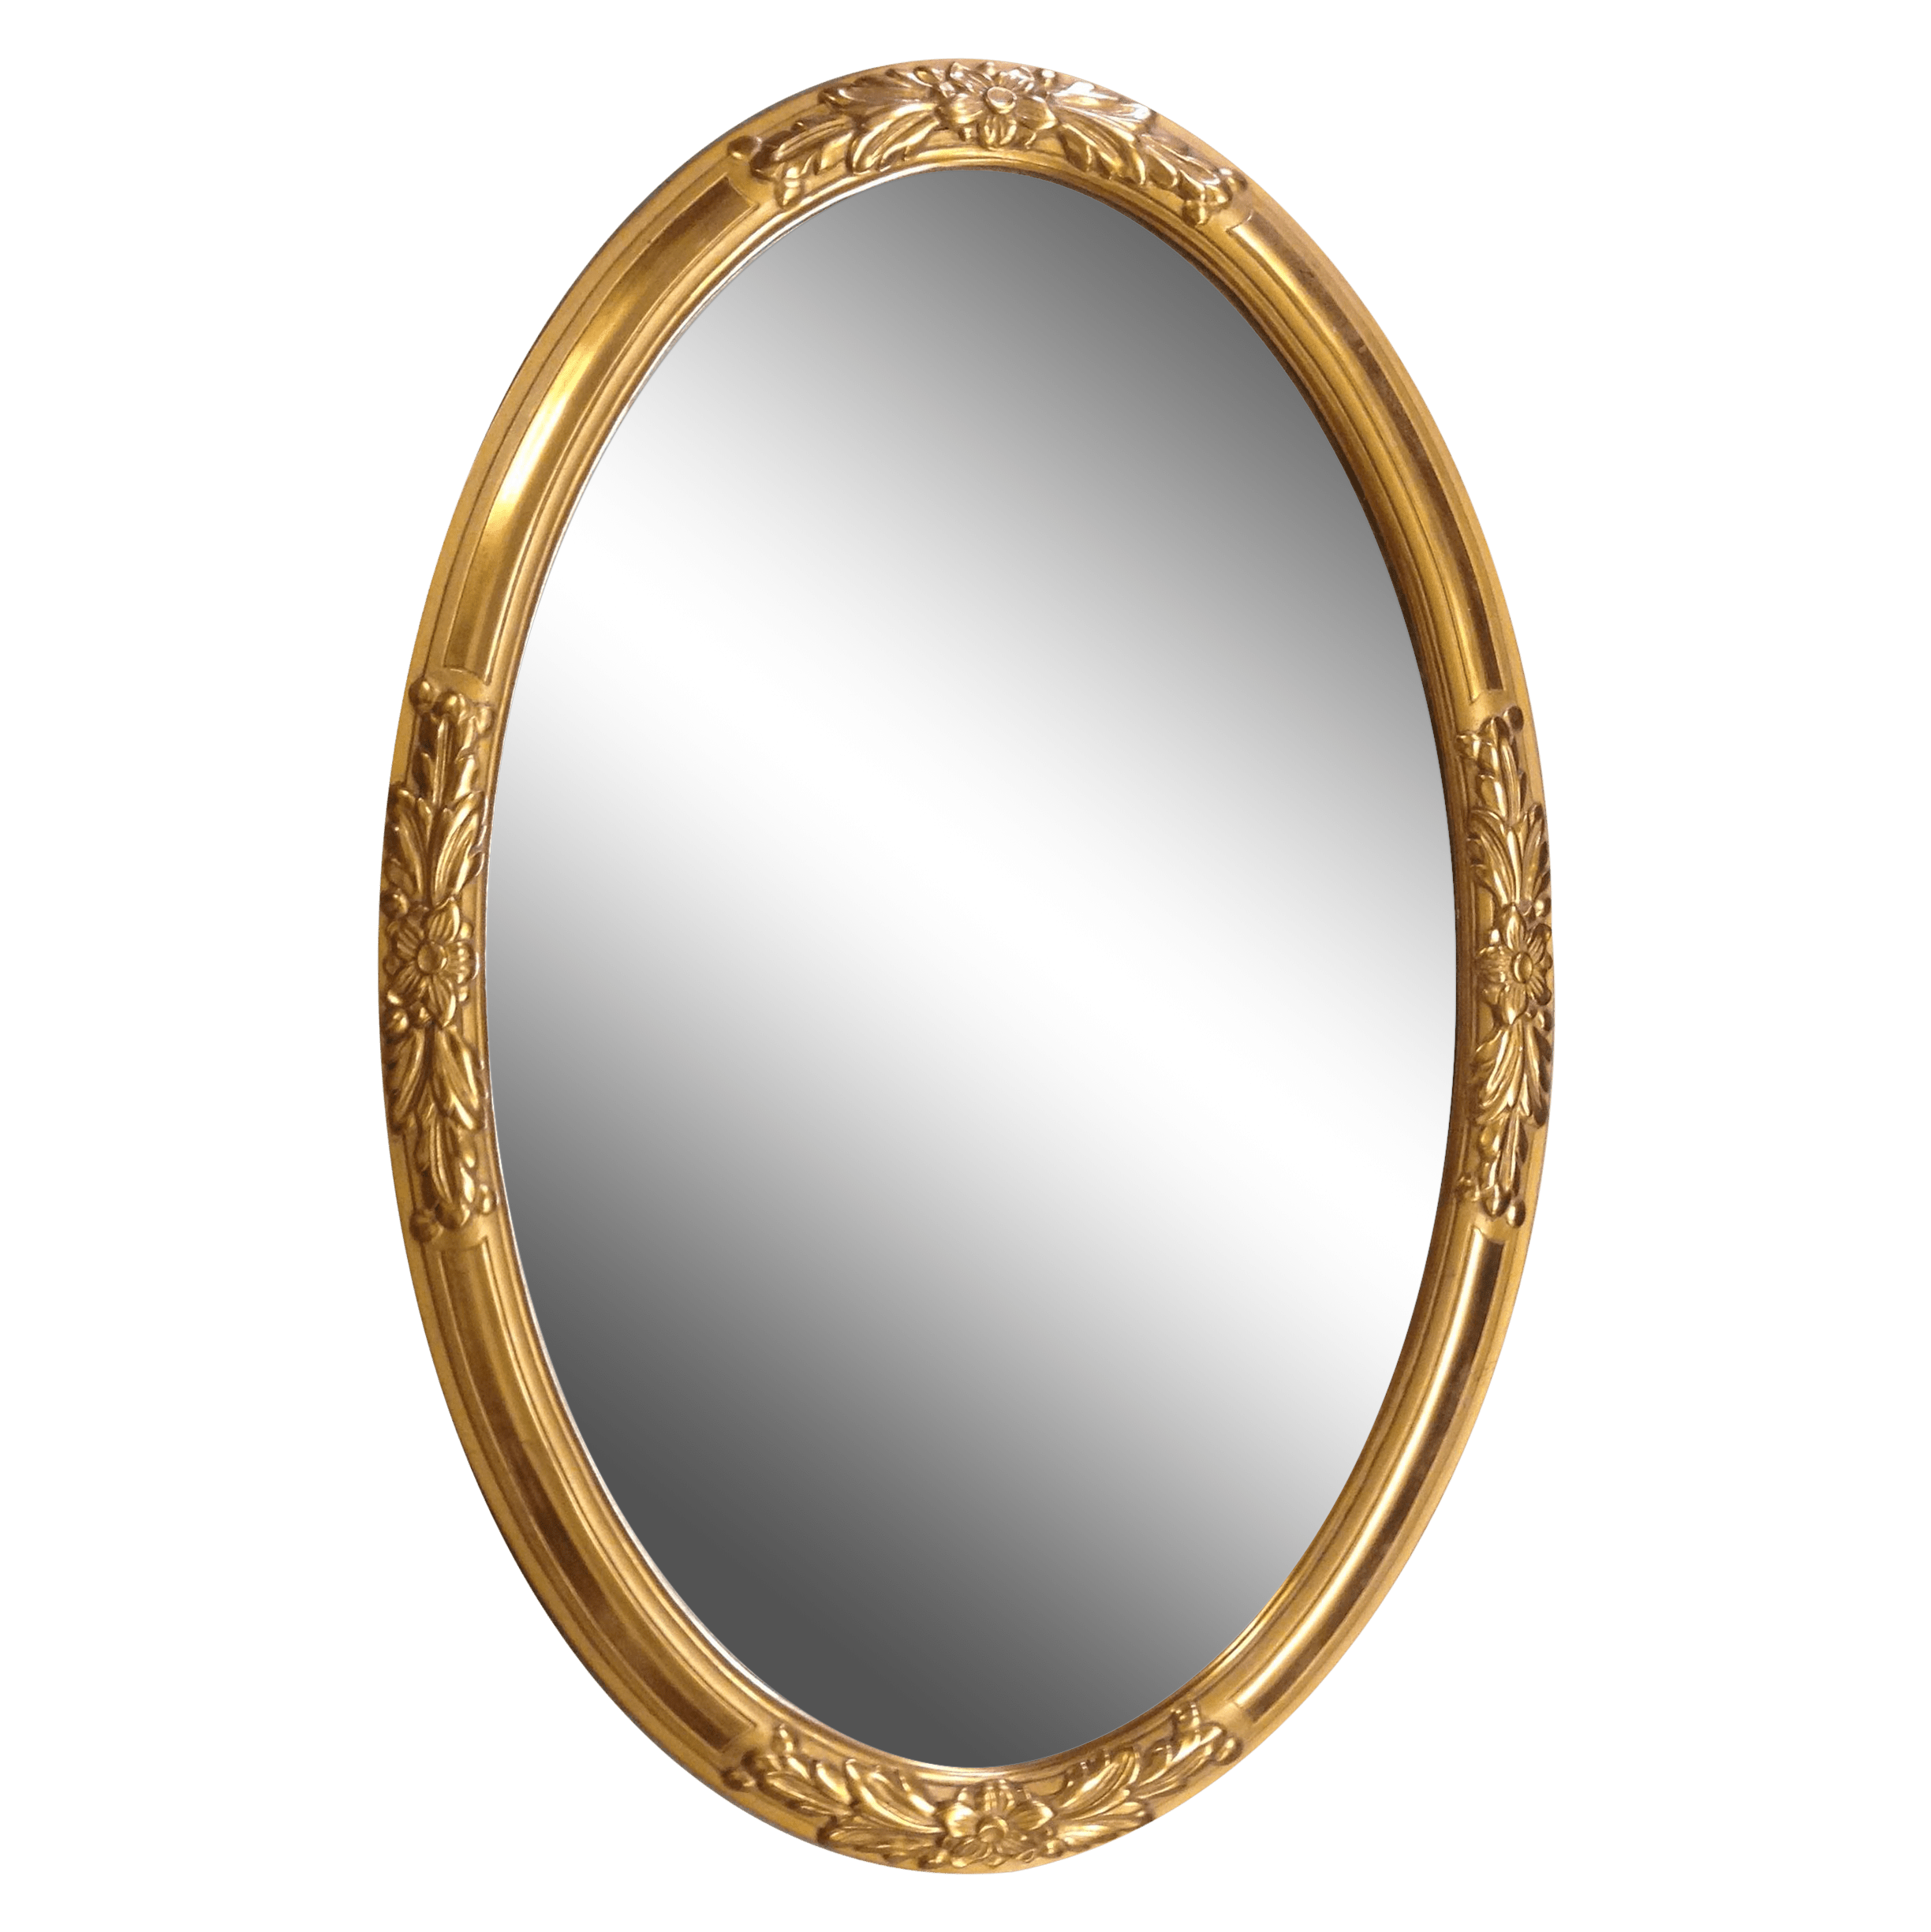 Oval Mirror Wood Frame 1930s French Gold Wood Framed Oval Mirror